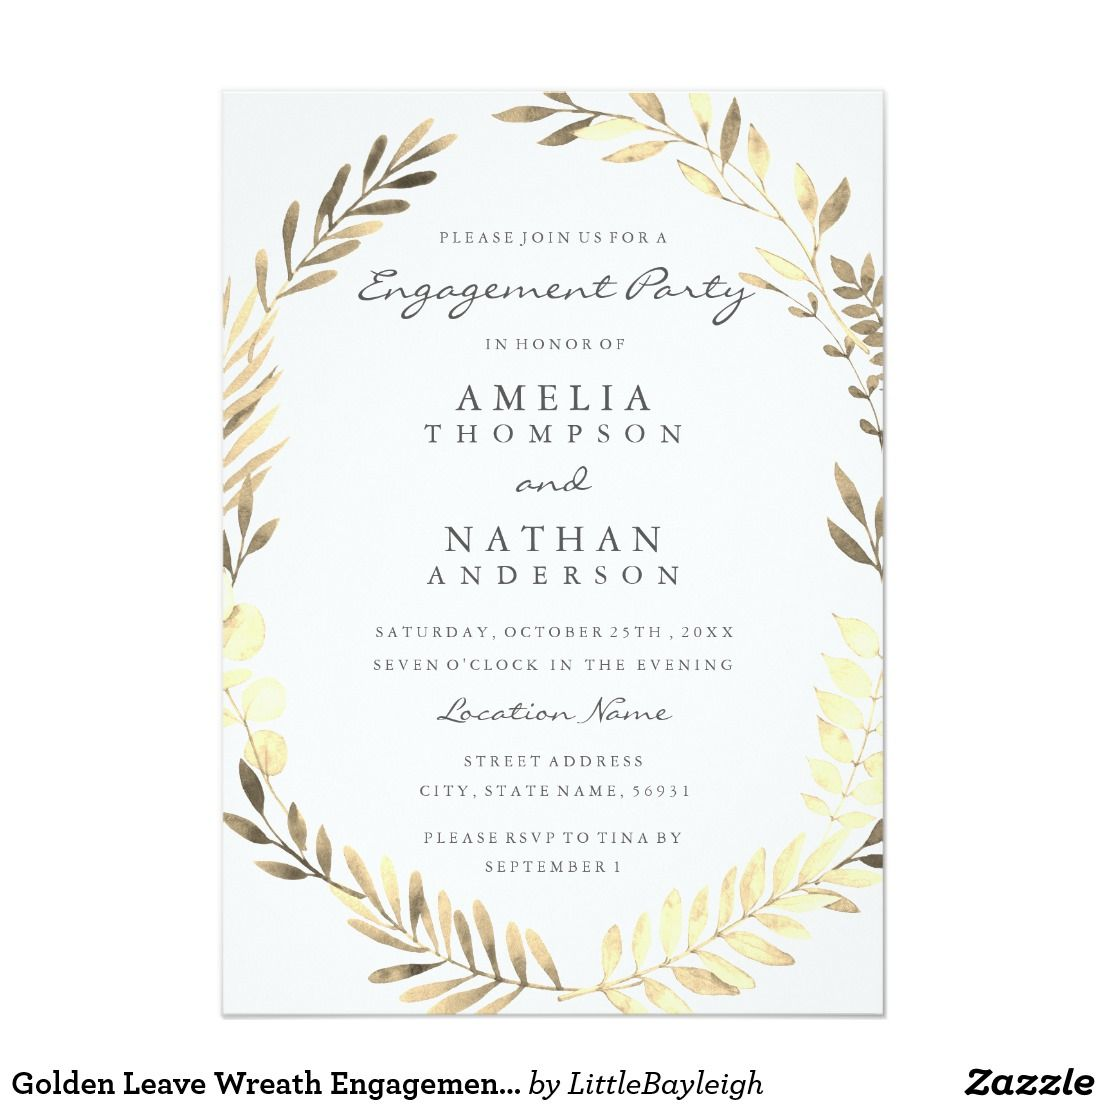 Golden Leave Wreath Engagement Party Invite | Engagement Party ...